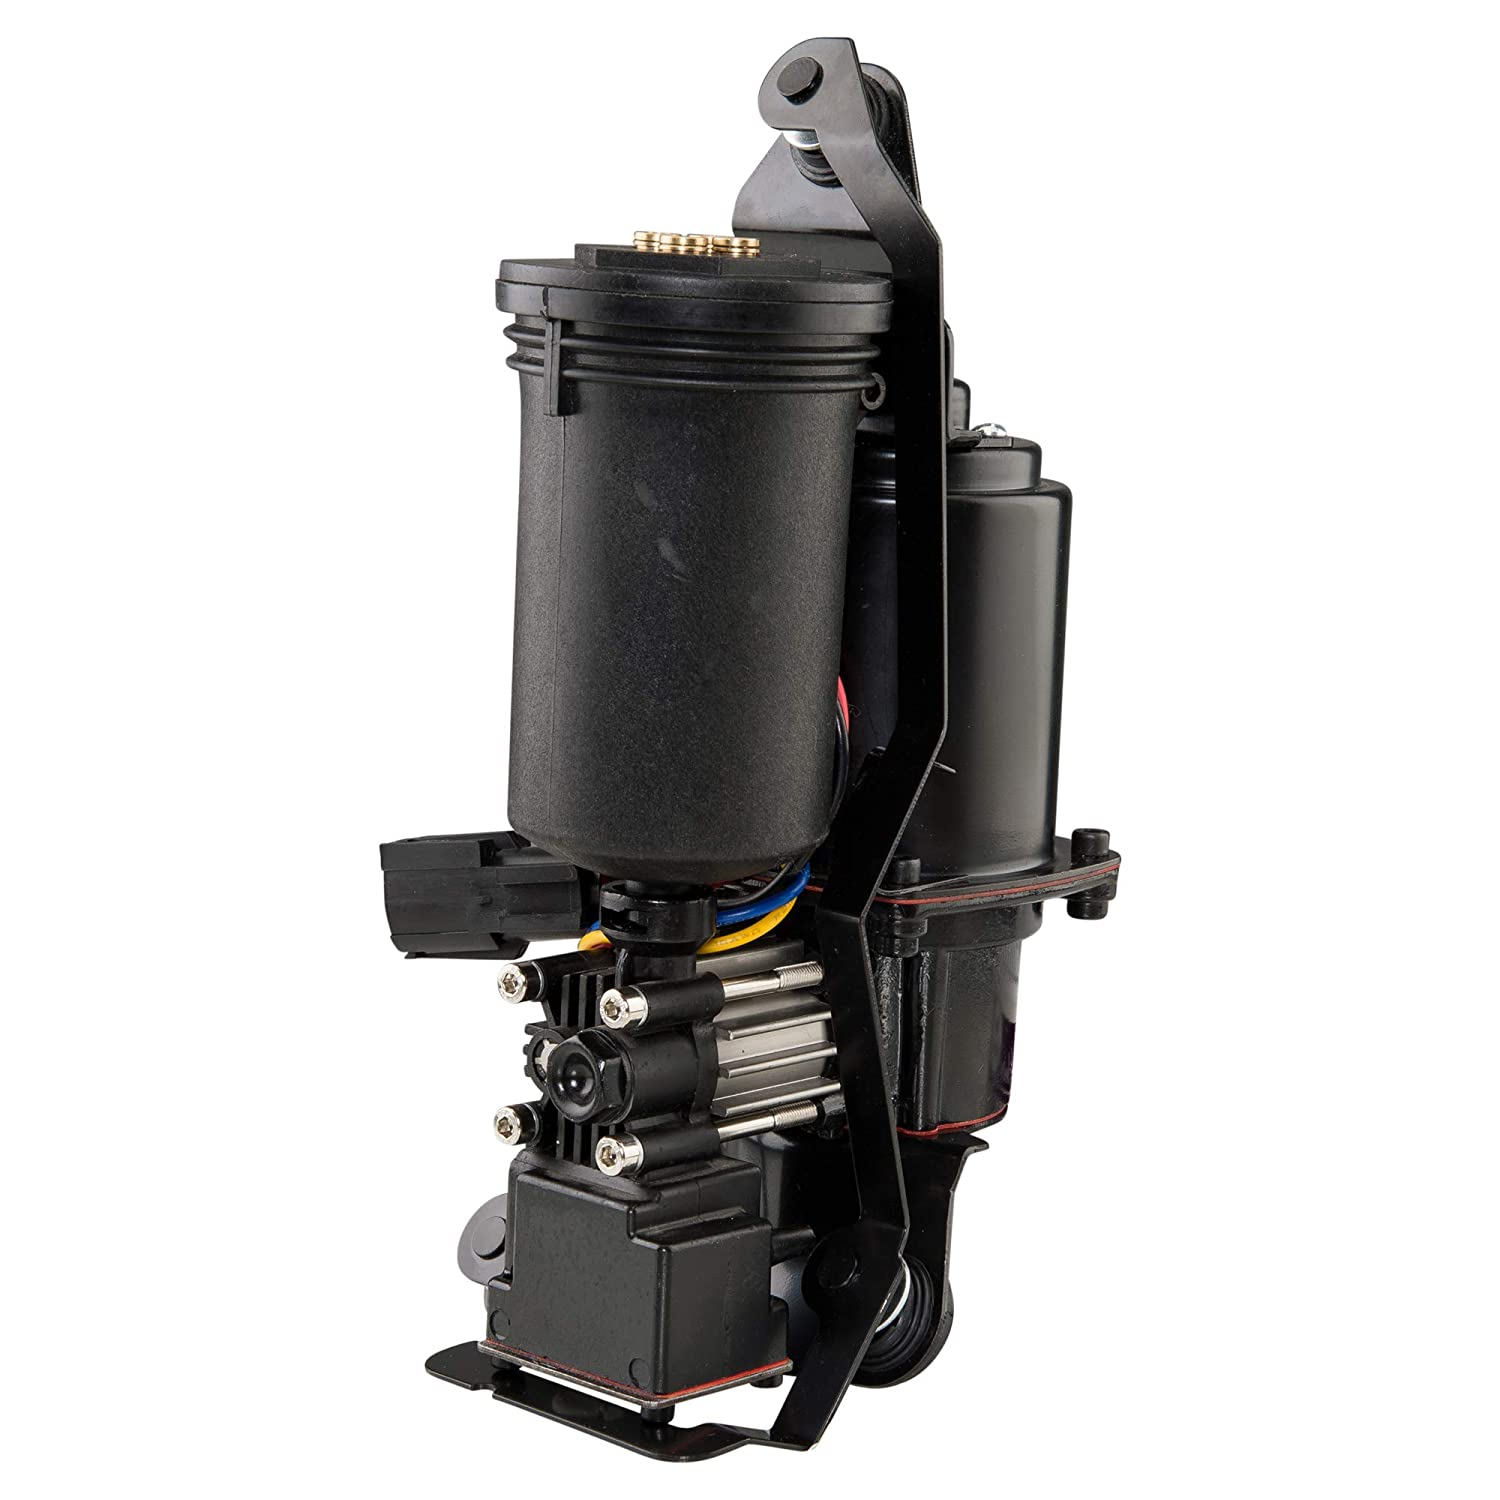 Air Compressor for 1998-2002 Lincoln Town Car fits P-2191 Parts Galaxy